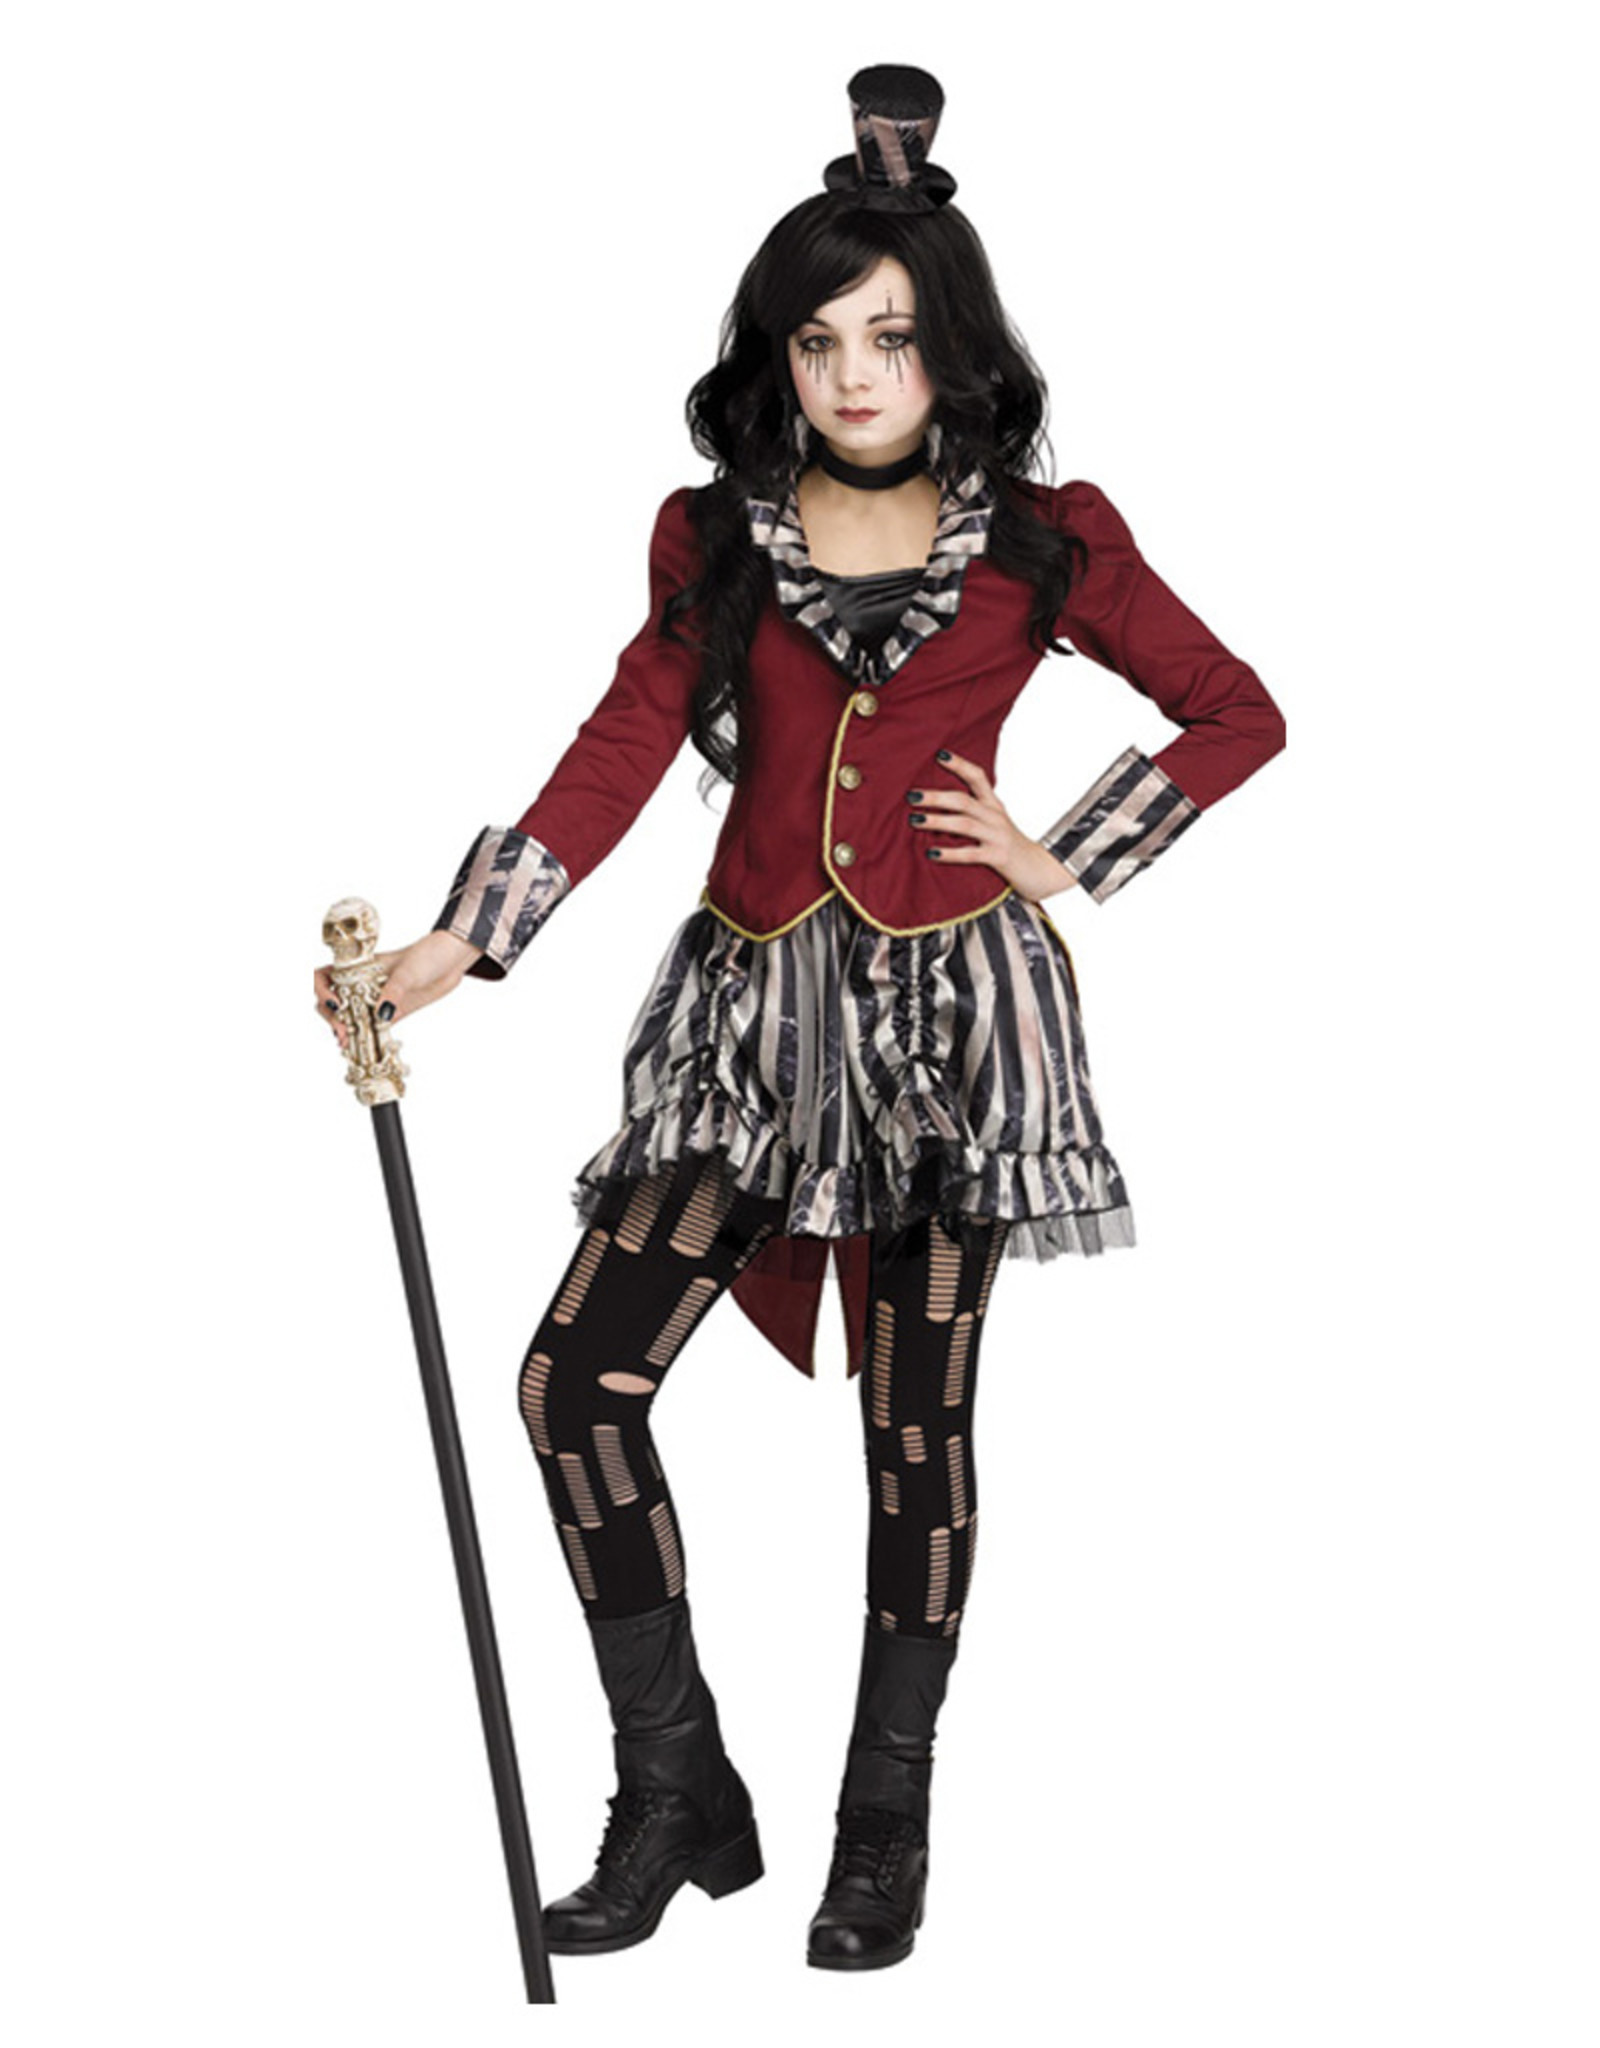 Freakshow Ringmistress Costume - Girls